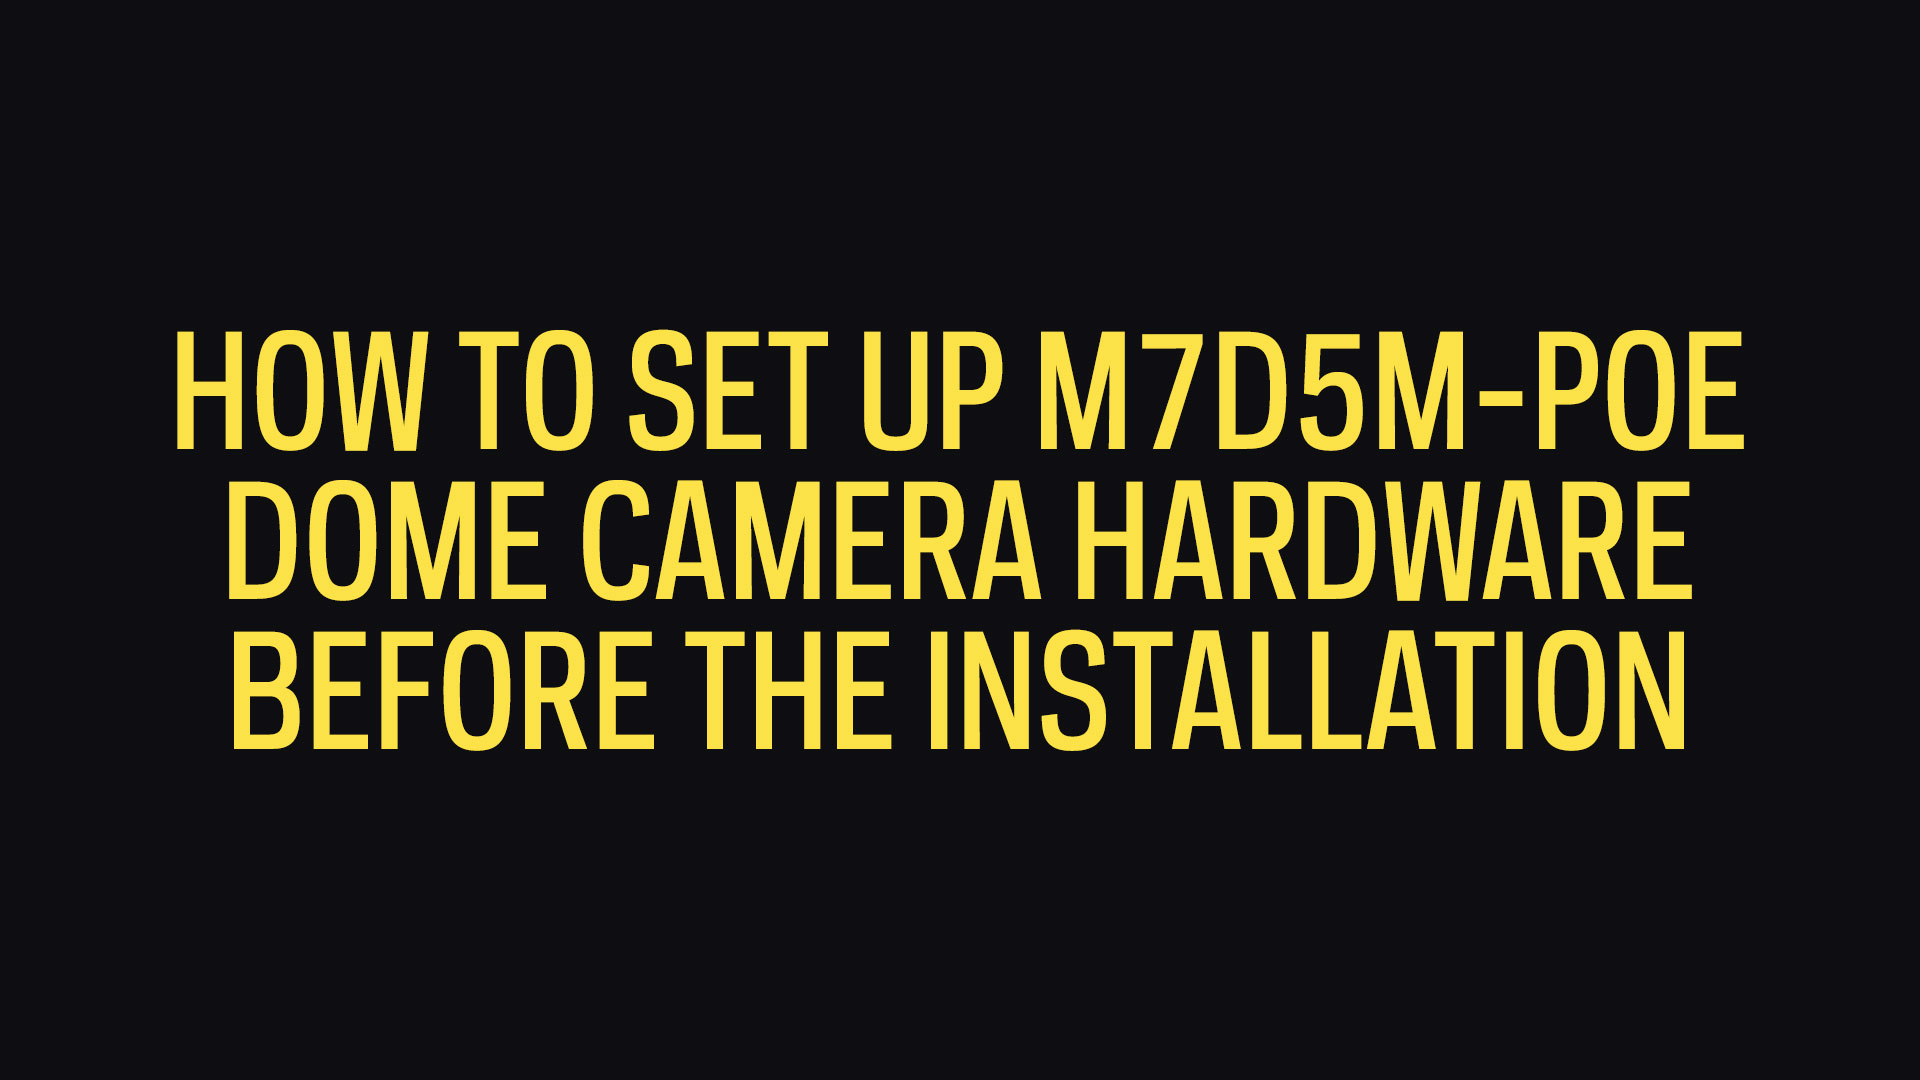 How To Set Up M7D5M-POE 5MP Dome Camera Hardware Before The Installation